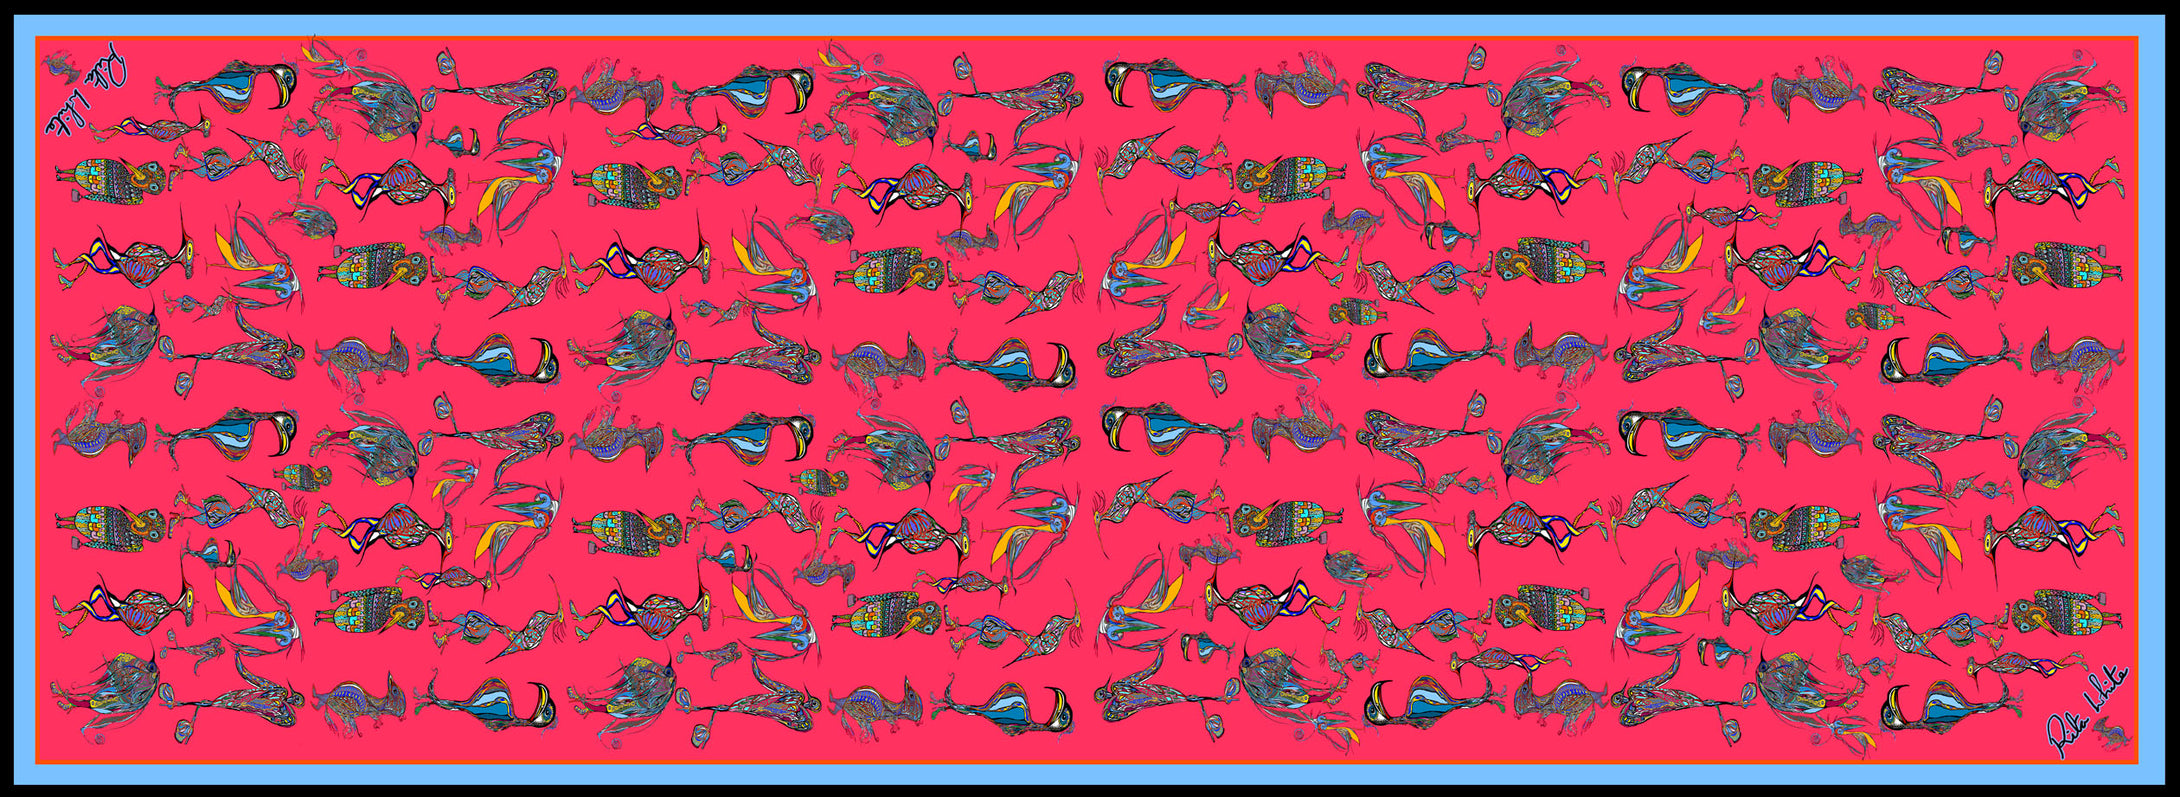 Red Birds Wearing Shoes, 100% Silk Twill, Long Rectangular Scarf